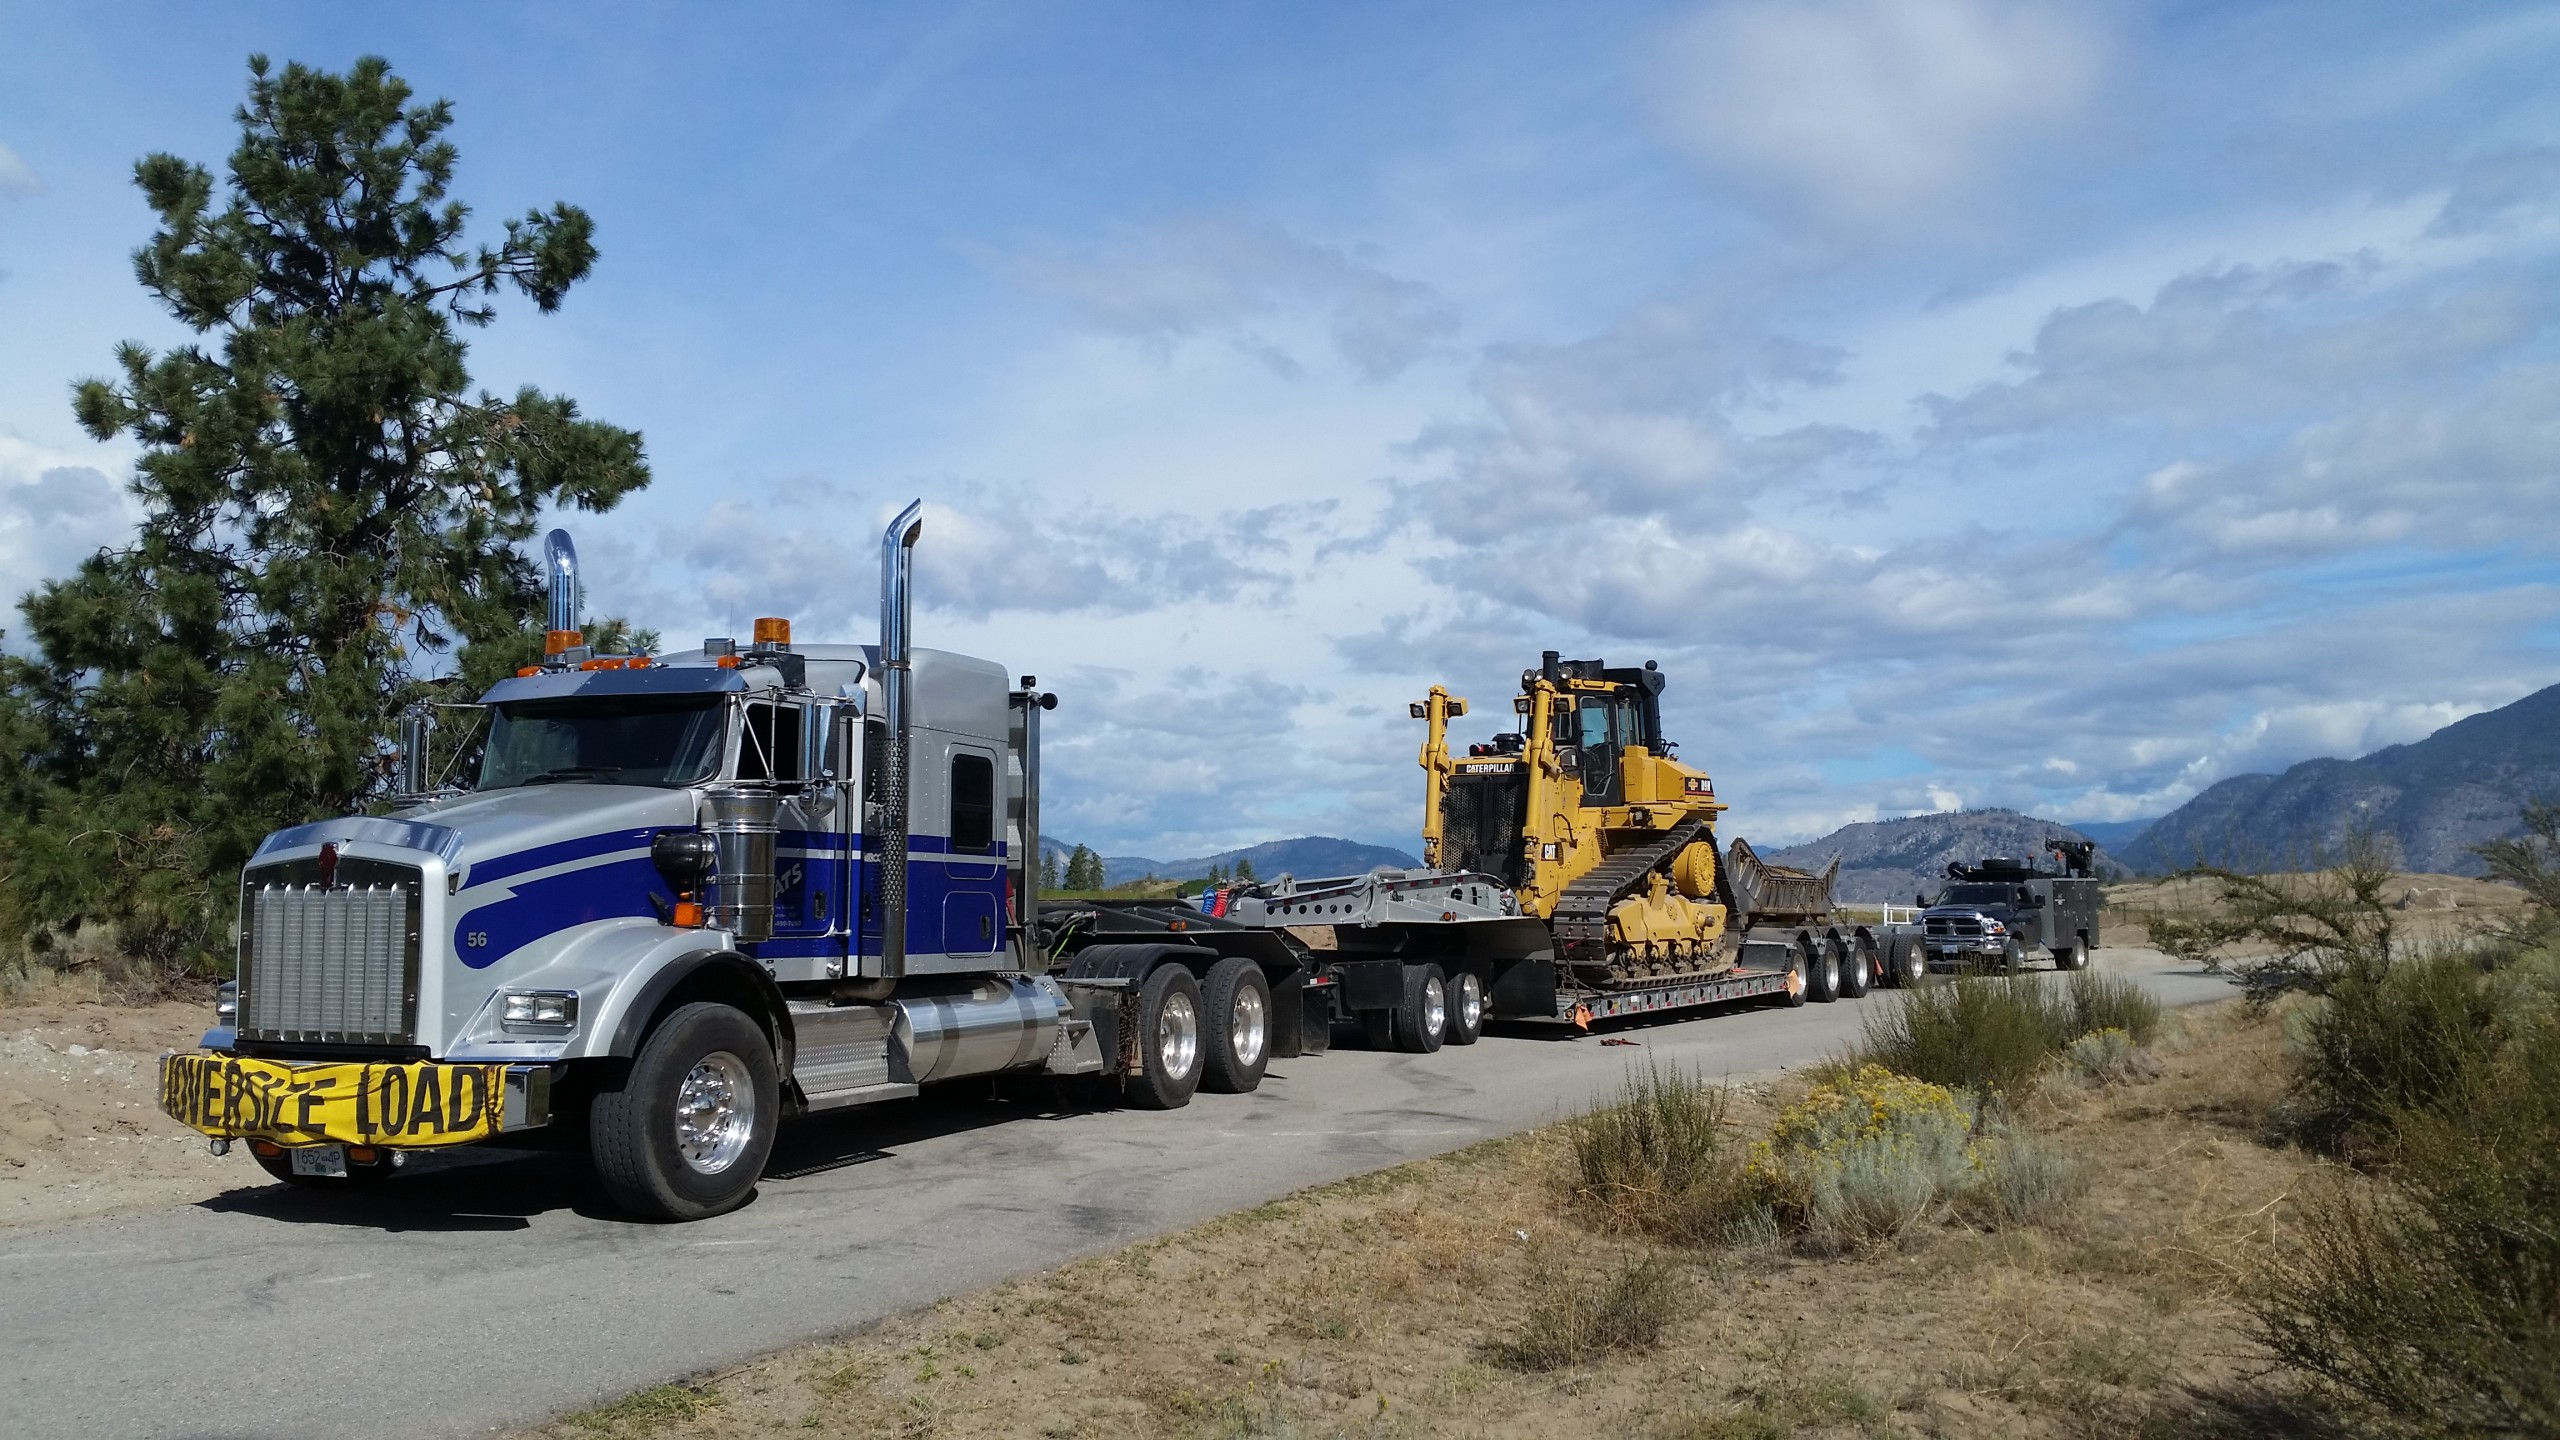 oversize load truck hauling tractor